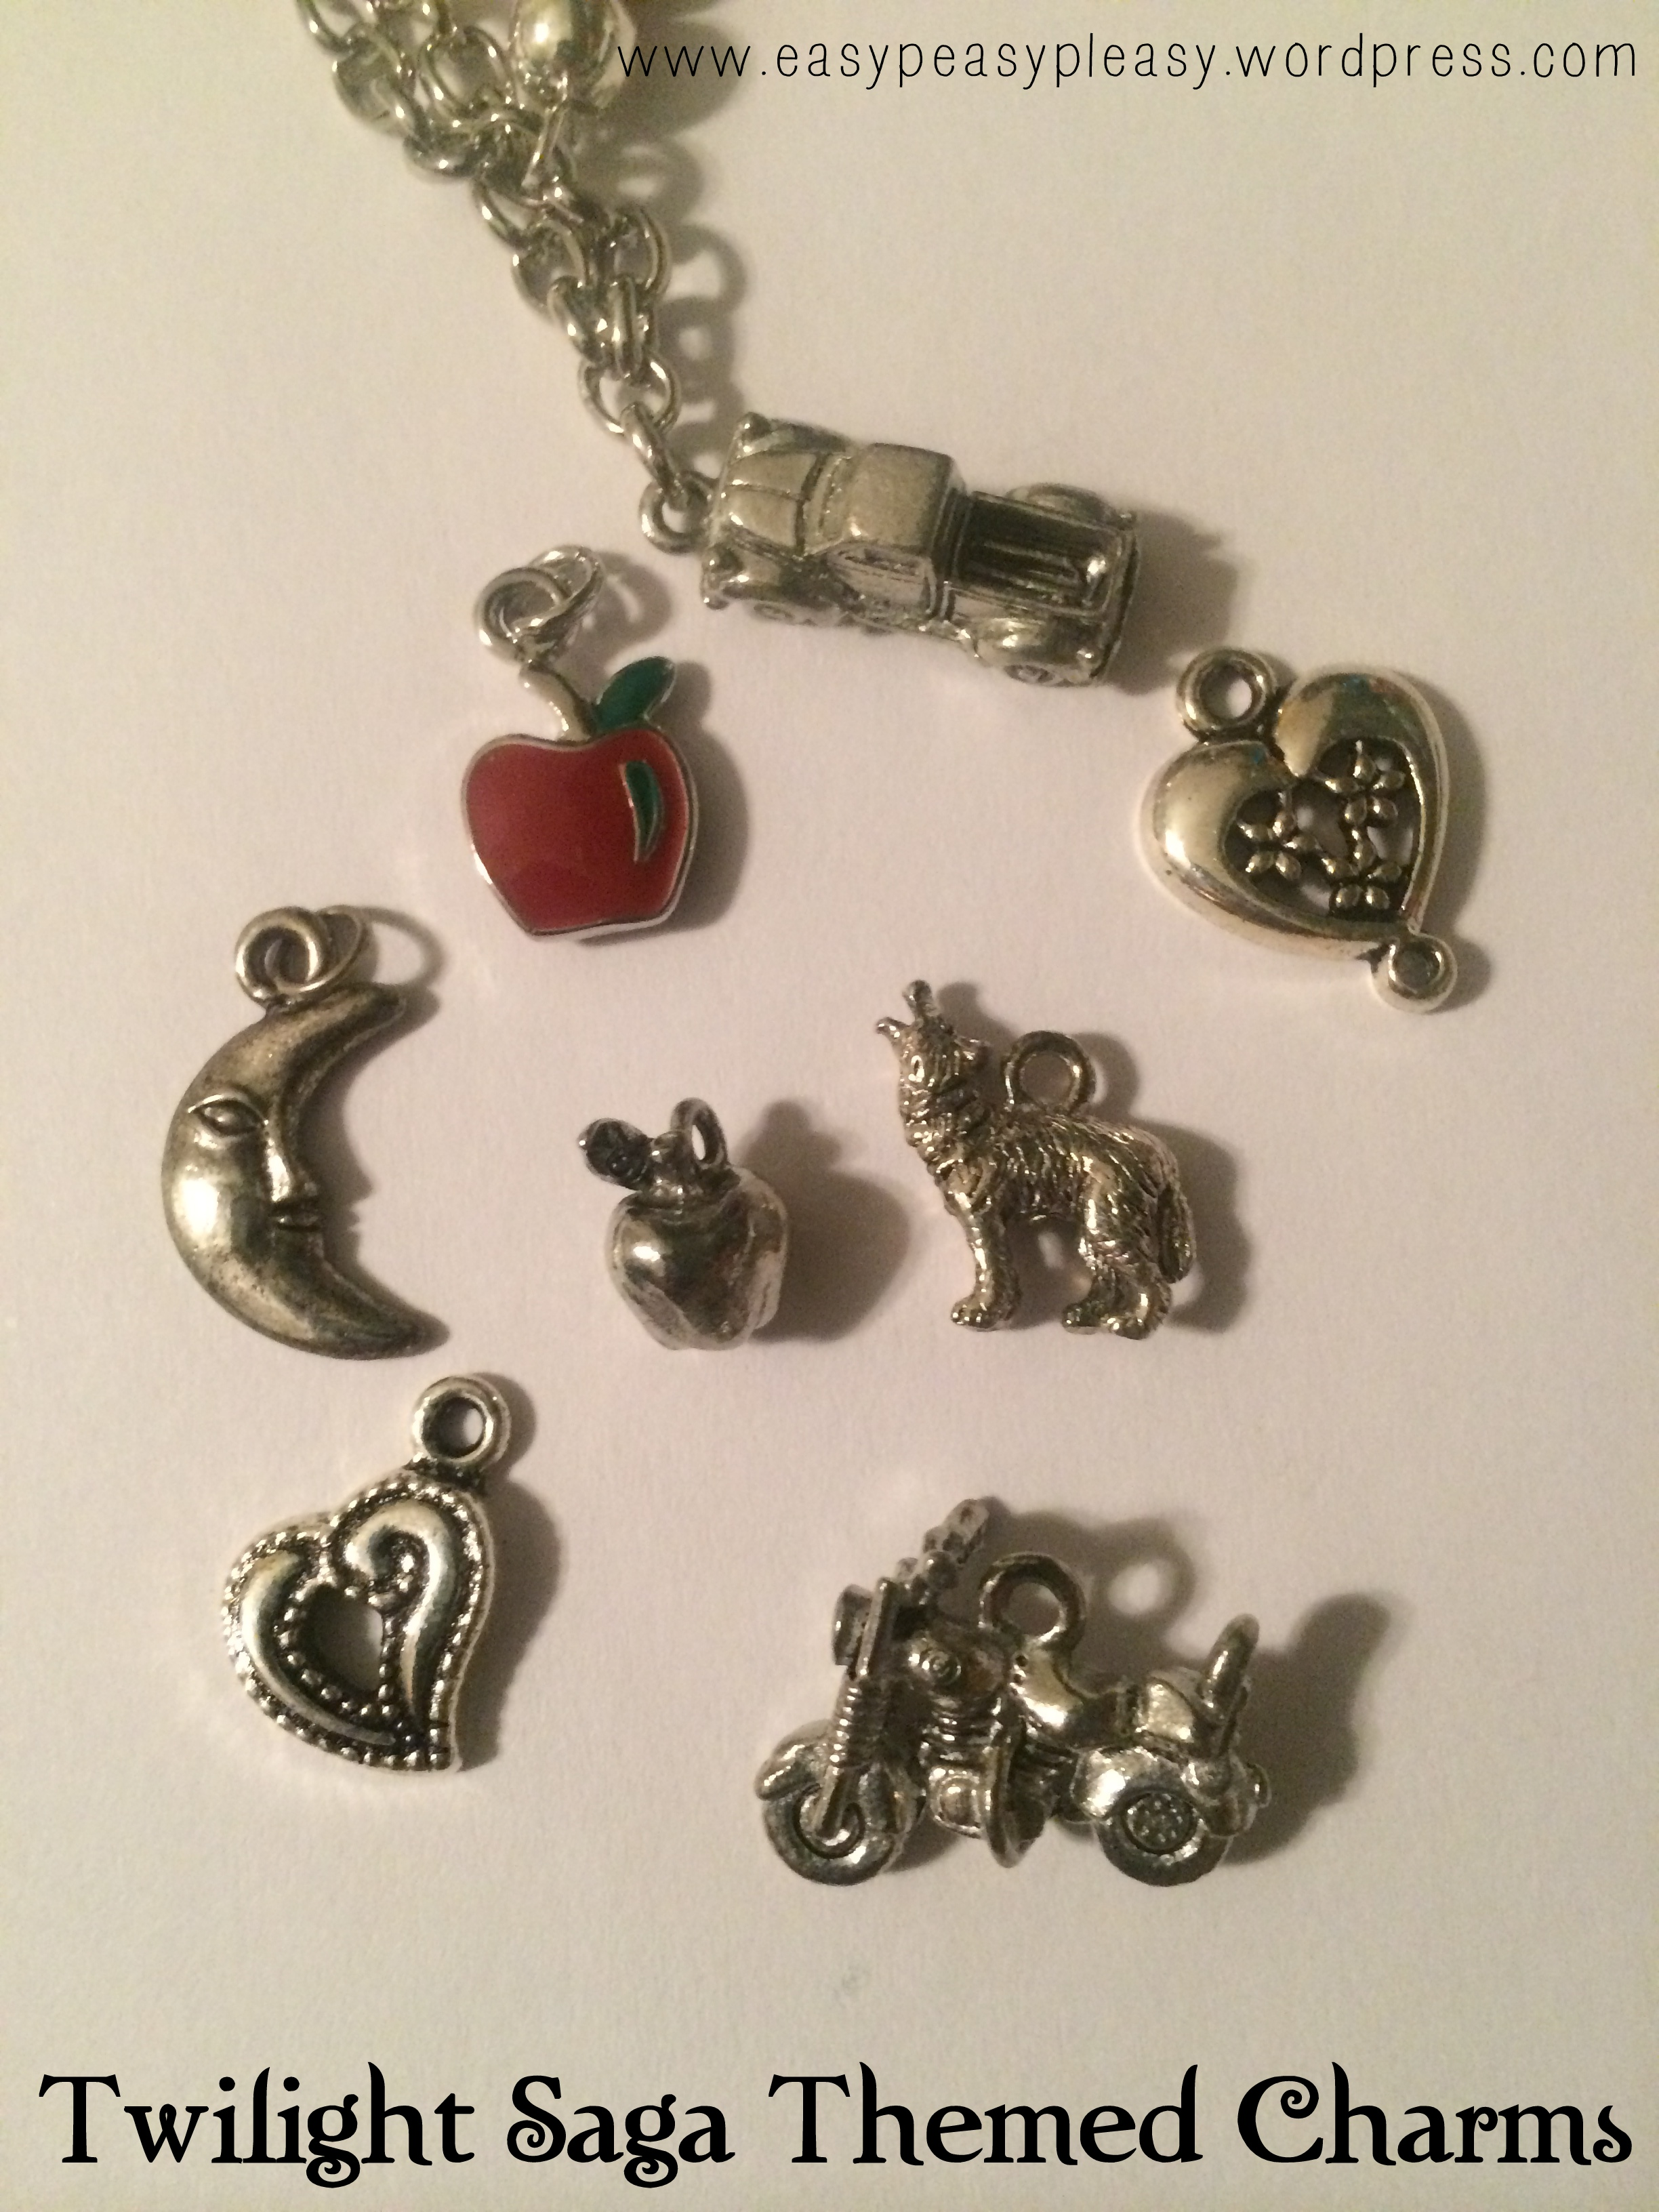 Twilight New Moon Party Jewlery Station Twilight Saga Themed Charms